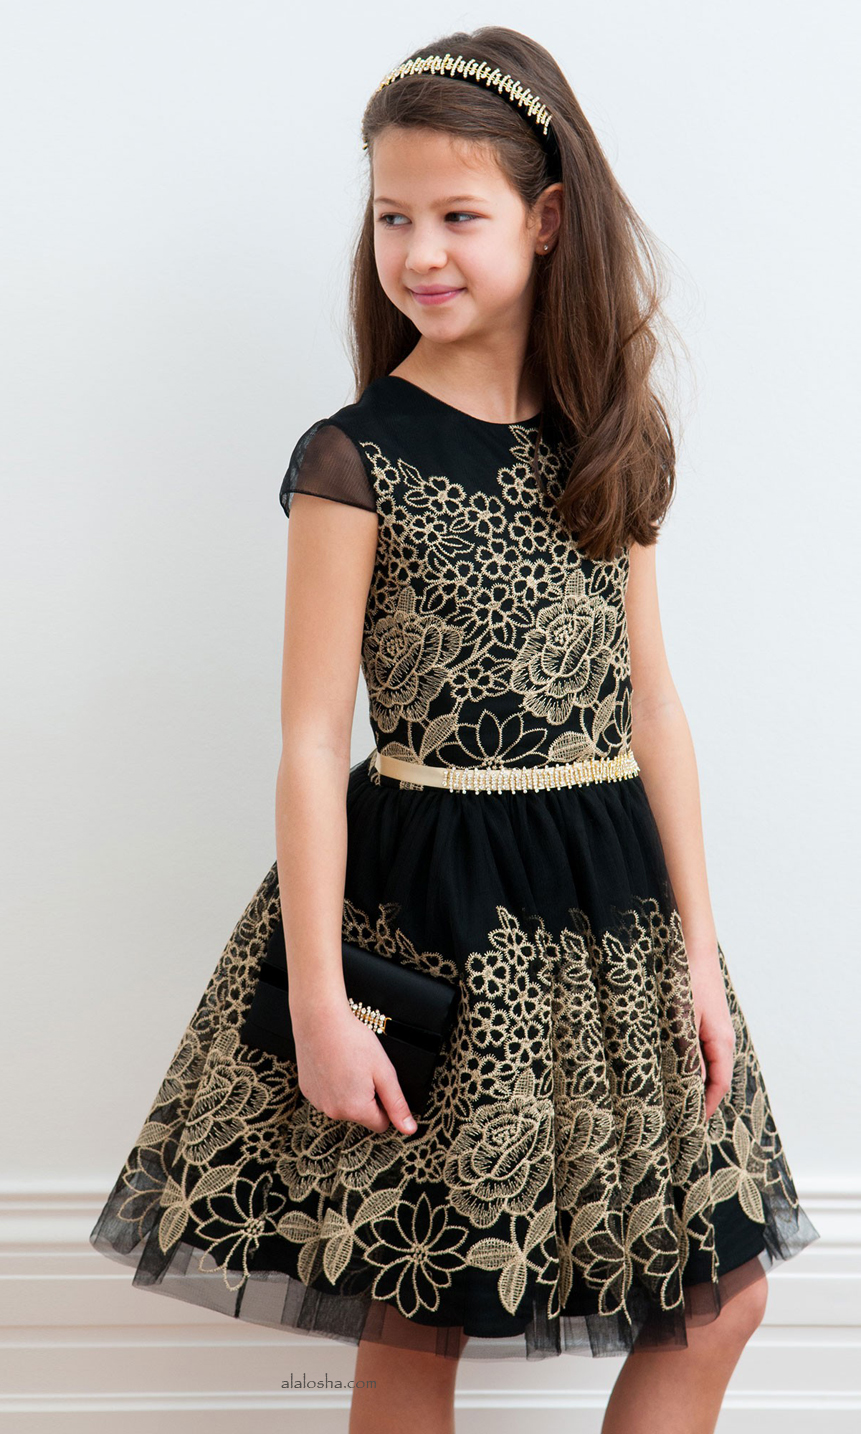 c91488f06616 Your special girl will go crazy for these dresses from David Charles ...